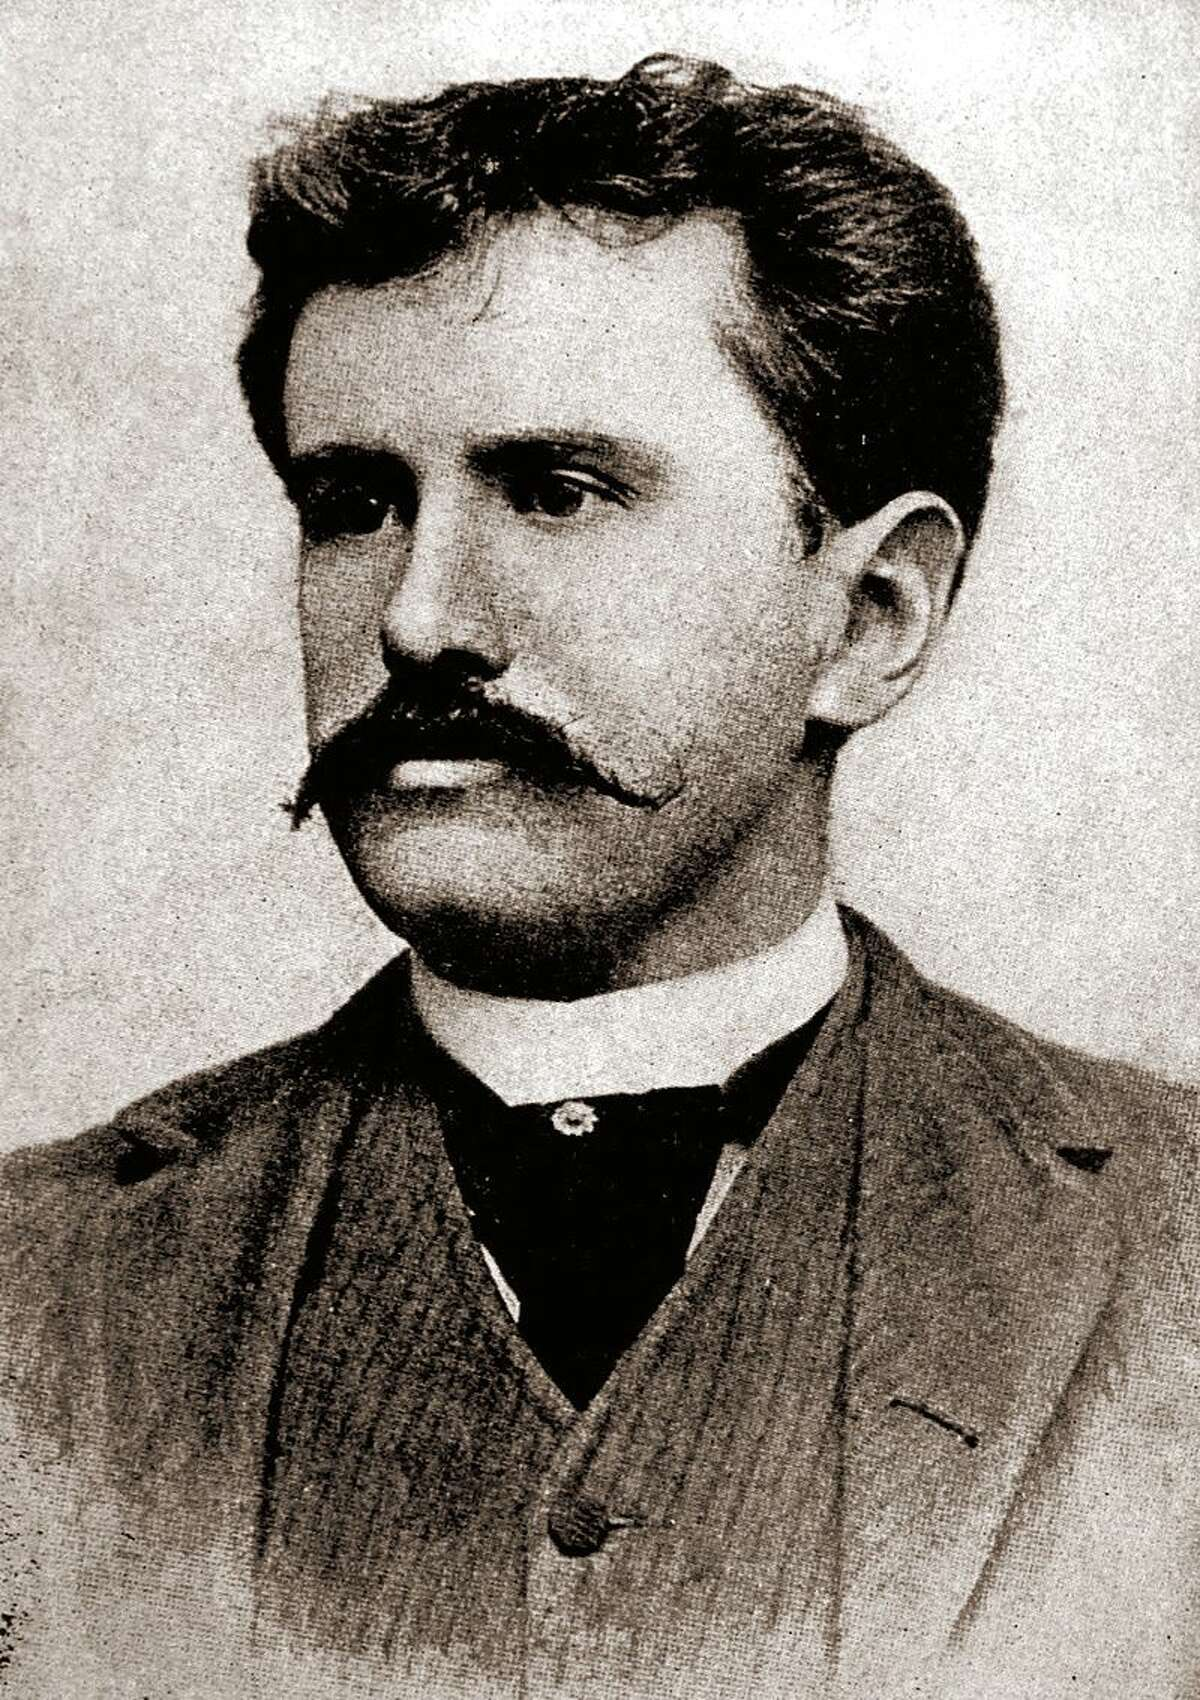 O.Henry in his 30s, around the time he lived in San Antonio. O. Henry was the pen name of writer William Sydney Porter, who wrote short stories about San Antonio and other subjects.